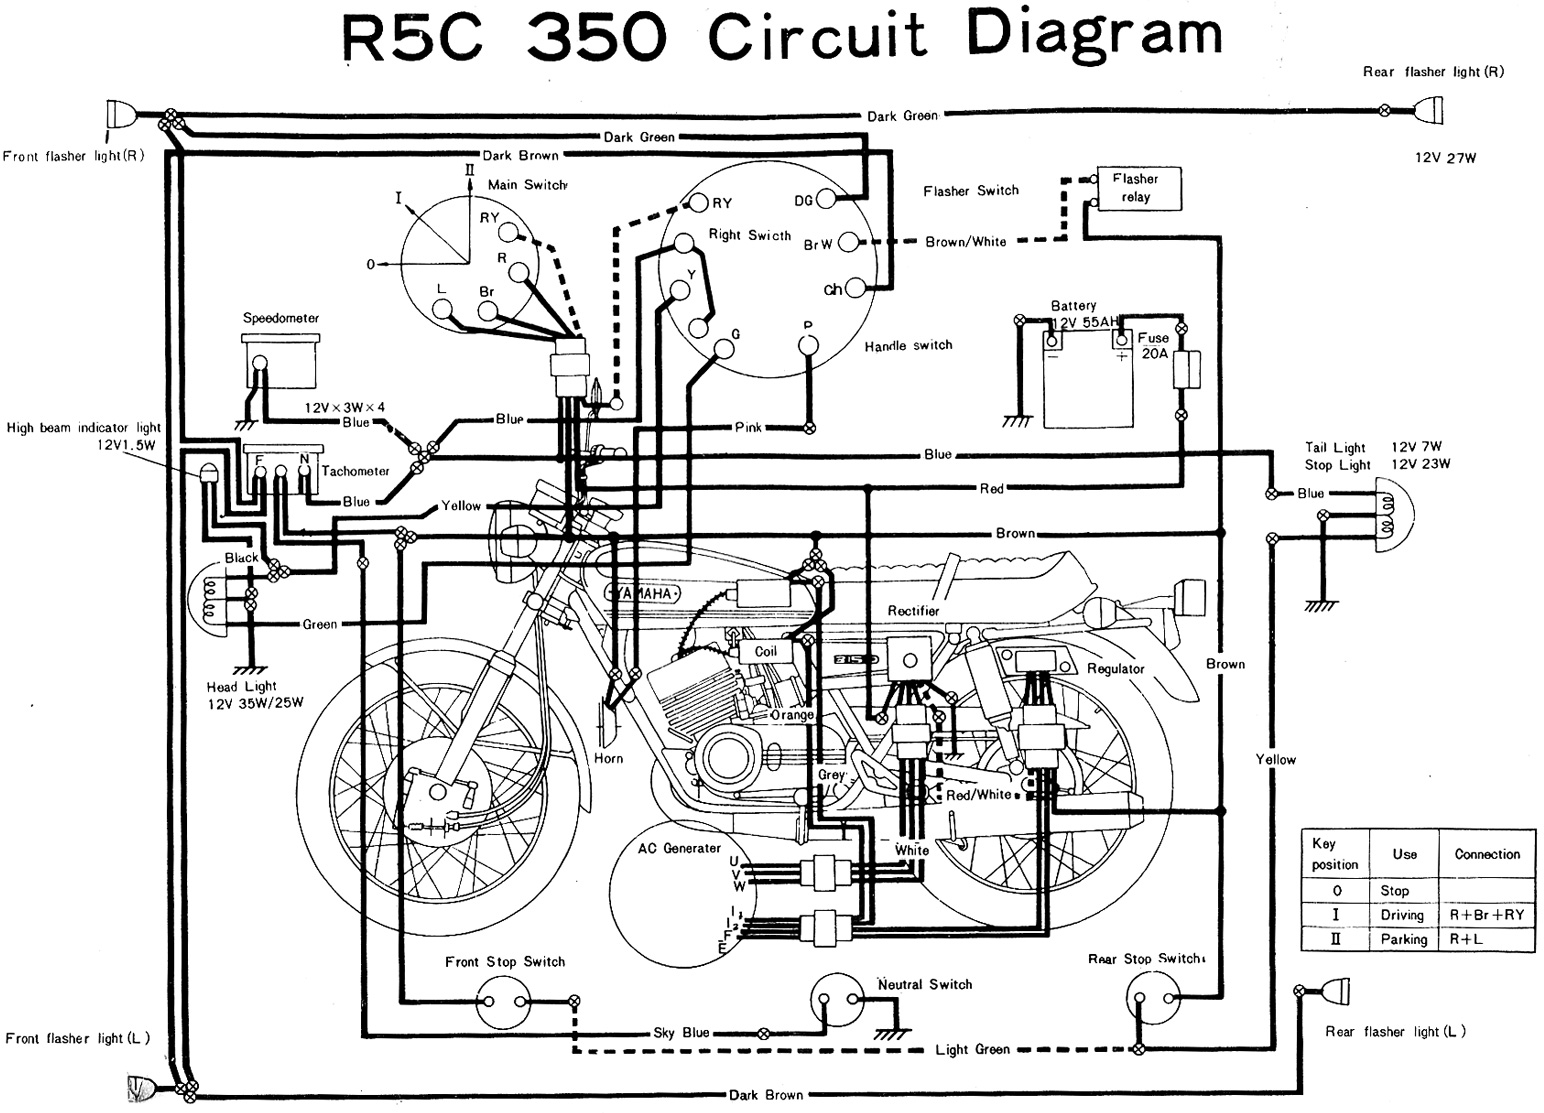 Yamaha Rd350 R5c Wiring Diagram Evan Fell Motorcycle Works